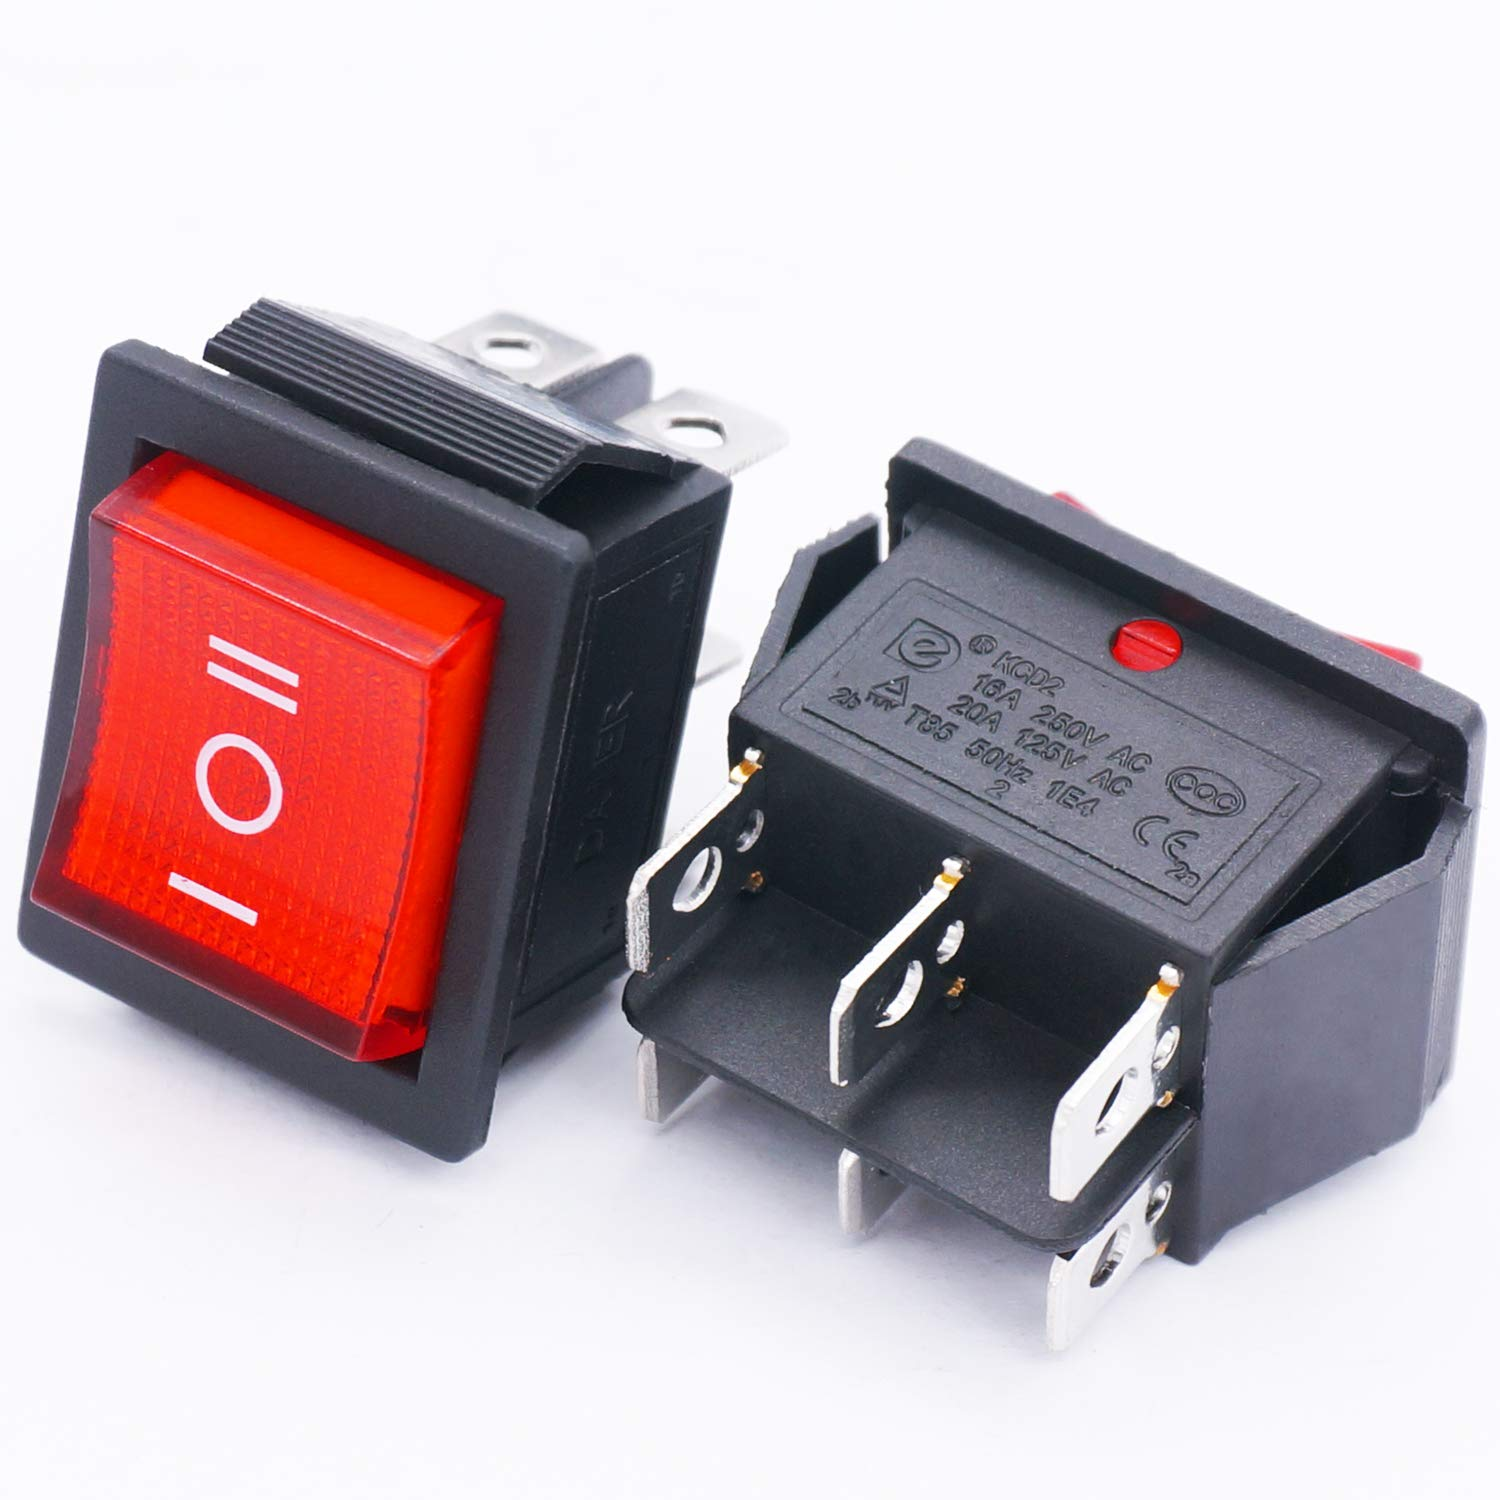 Red Illuminated 16A 250V AC//20A 125V AC Car Auto Boat Rocker Toggle Switch ON KCD2-223NR Quality Assurance for 1 Years -Off- ON TWTADE // 2Pcs DPDT 6 Pin 3 Position Momentary Boat Rocker Switch